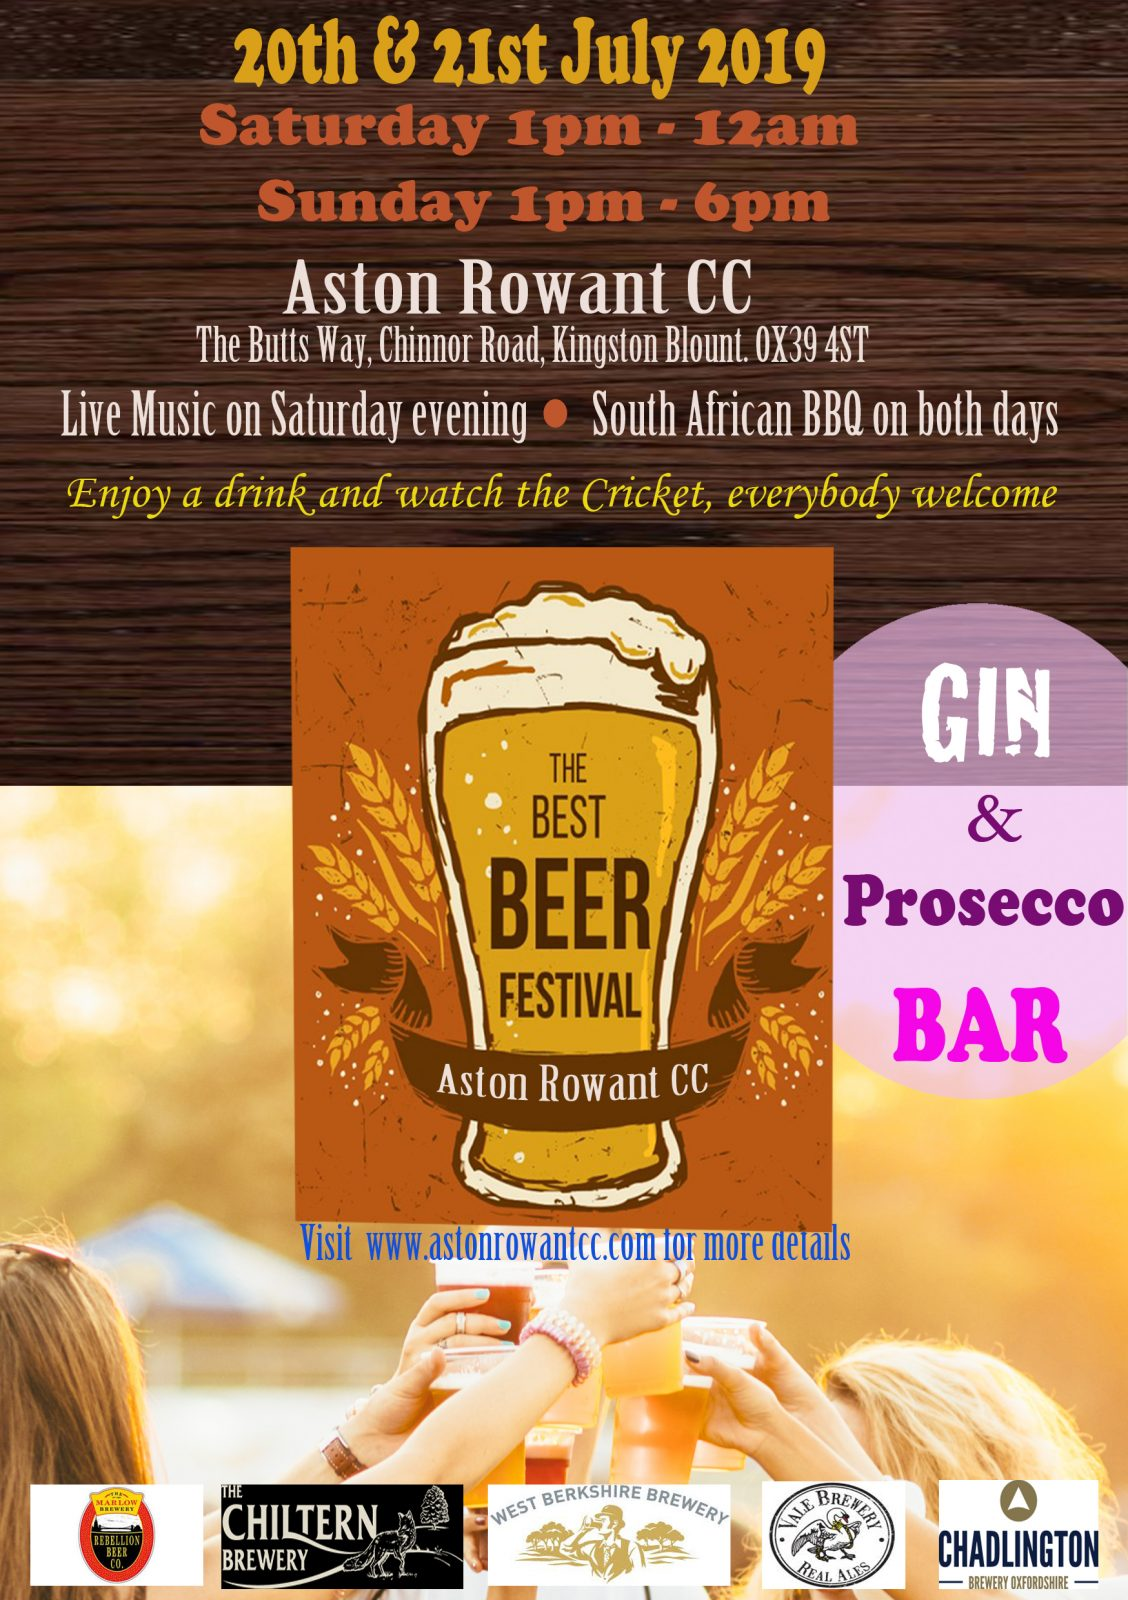 Aston Rowant Beer Festival 20th + 21st July